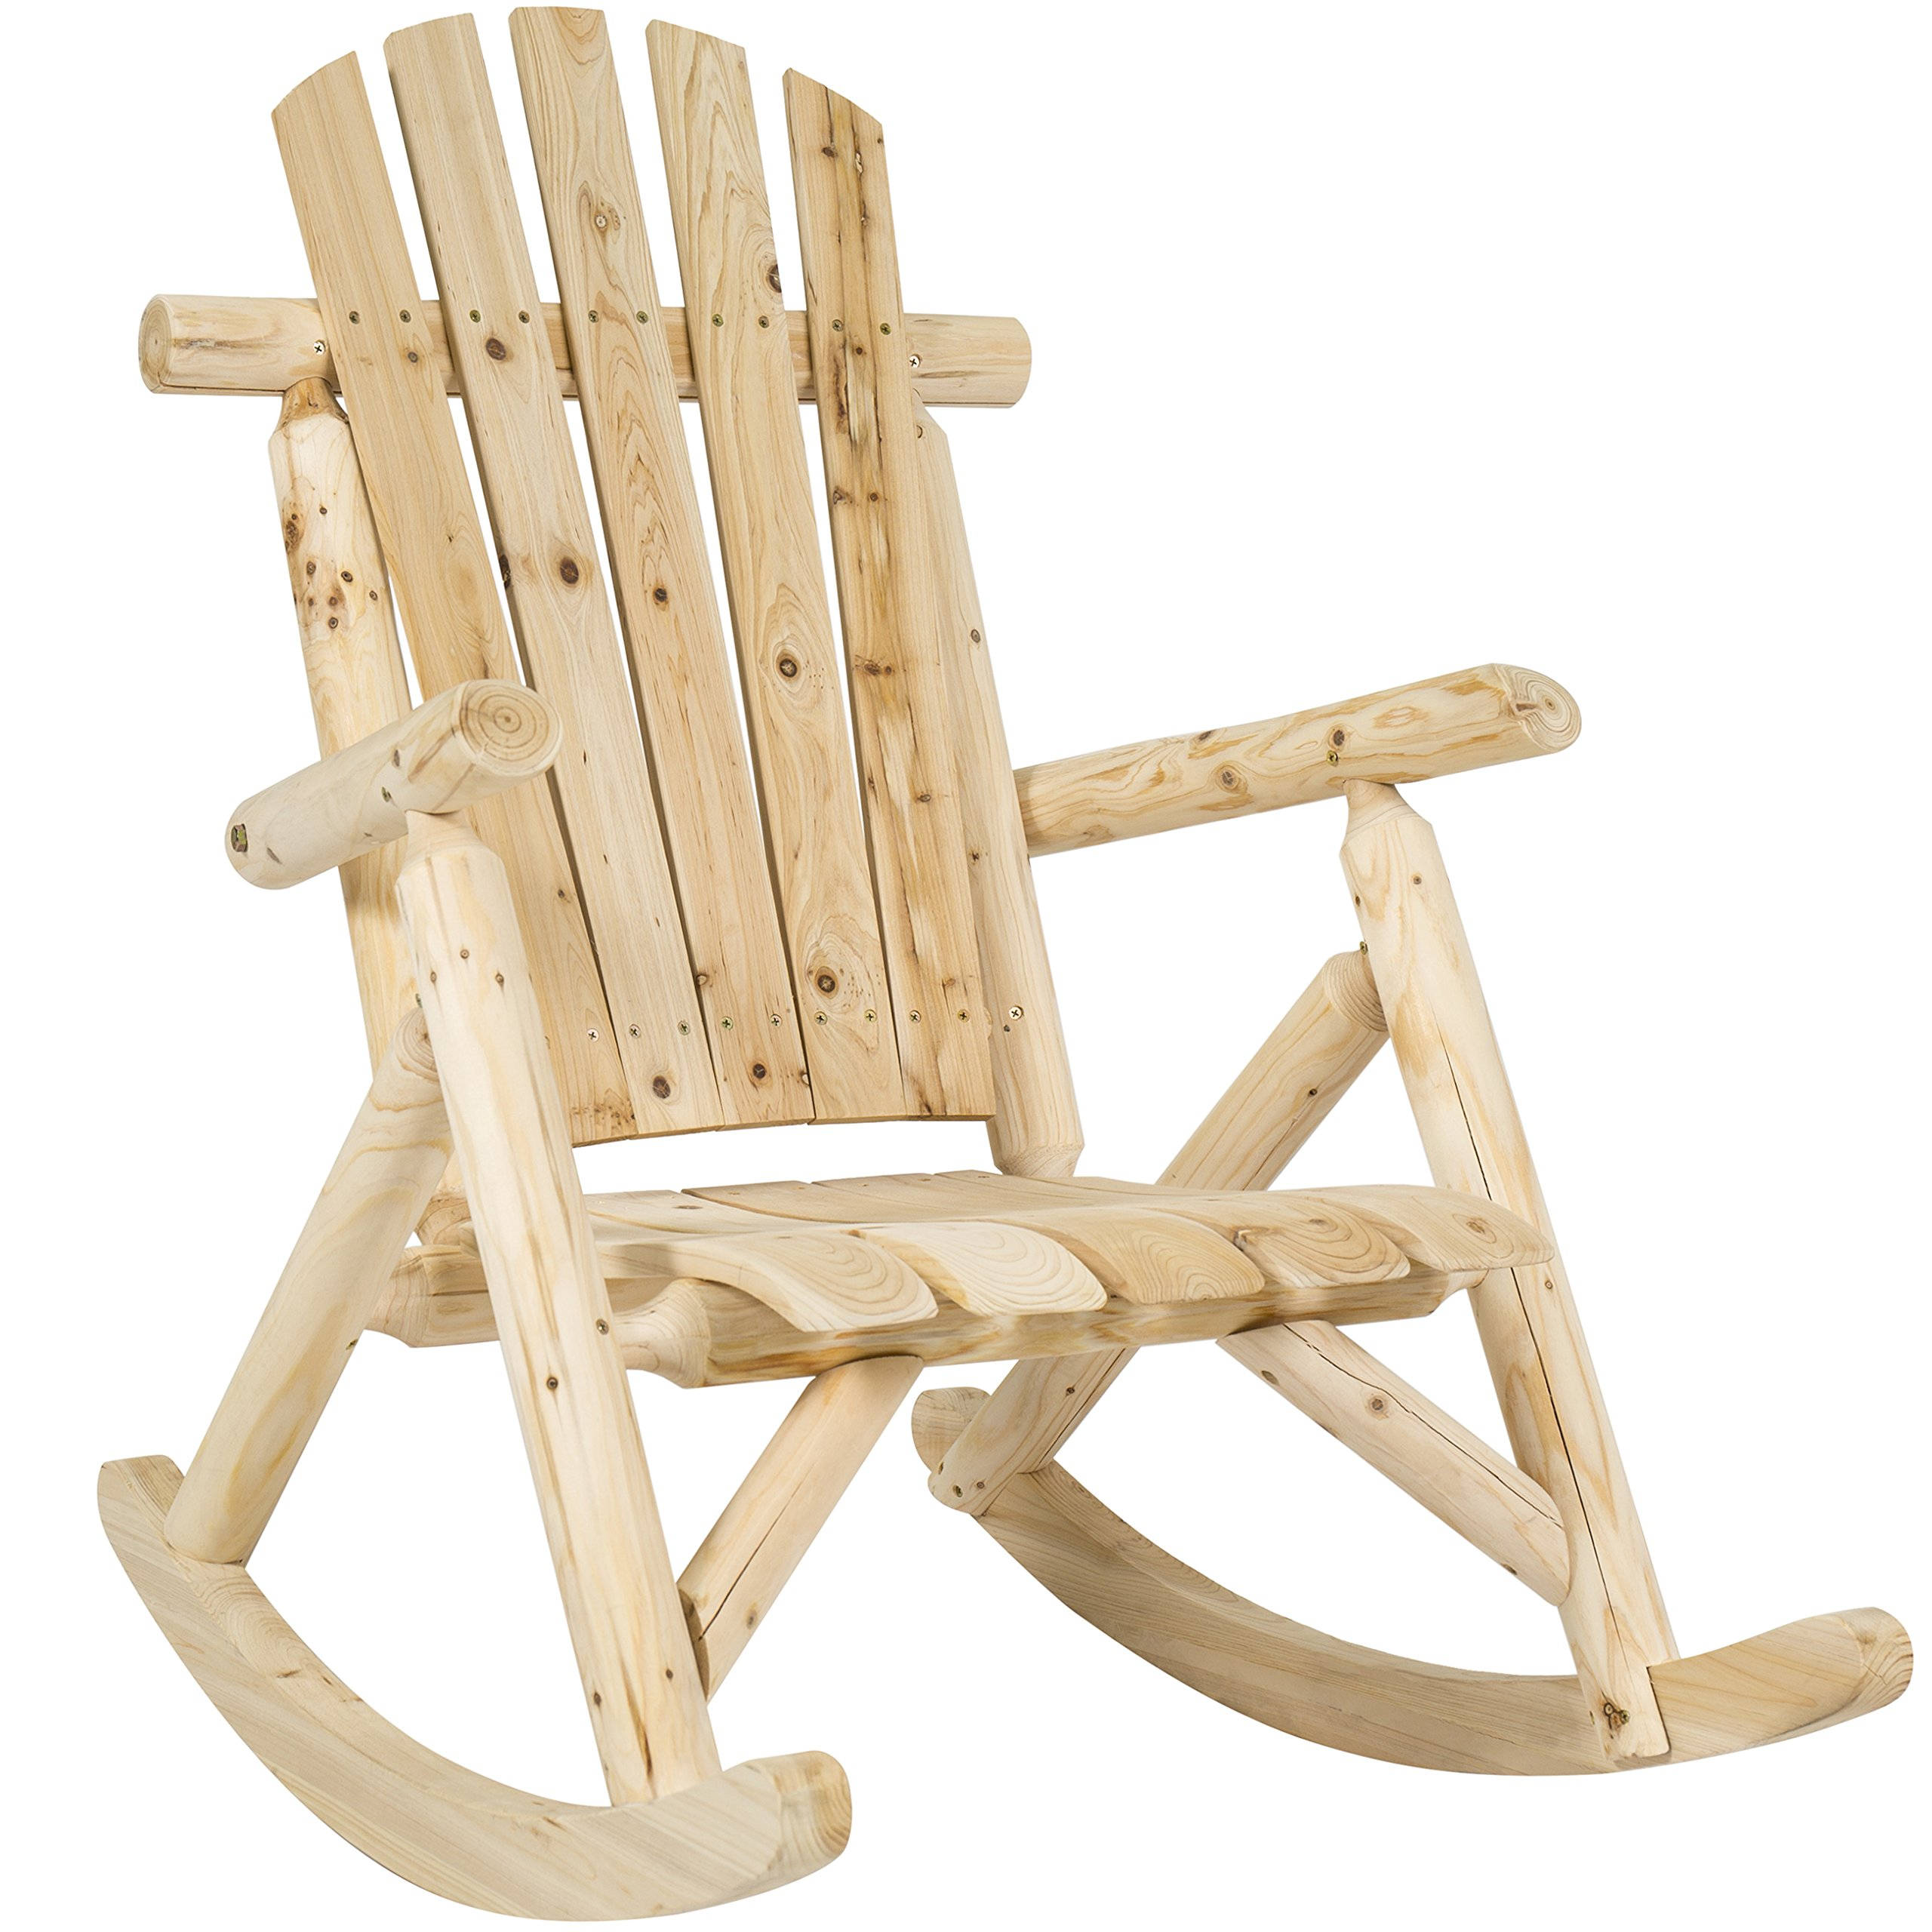 Best Choice Products Hardwood Log Rocking Chair Single Rocker Natural by Best Choice Products